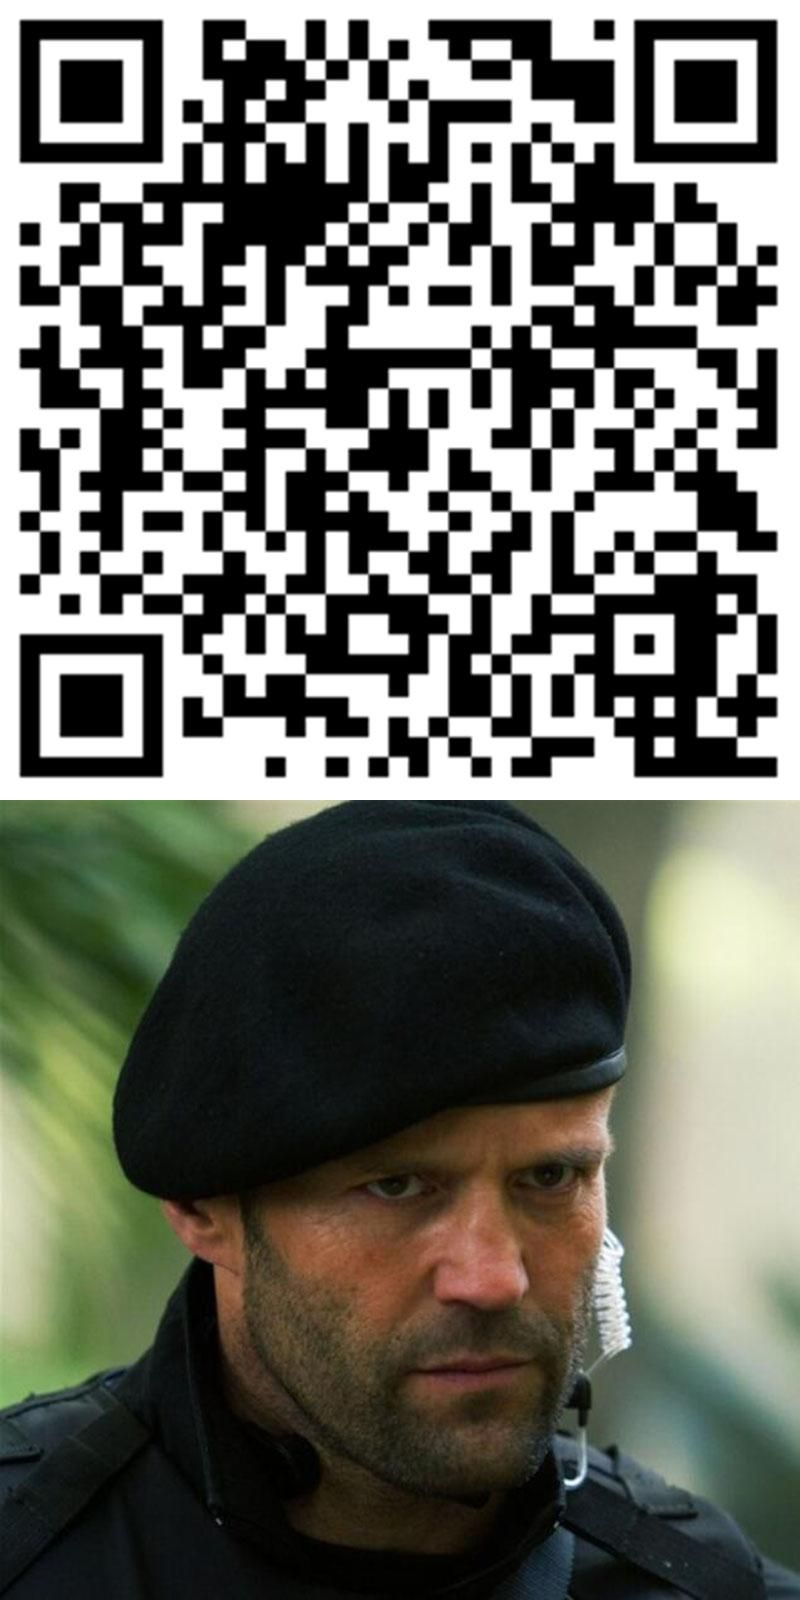 baac8b3a62b7d Top Quality Wool Special Forces Military Berets Caps Mens Army Woolen  Beanies Outdoor Breathable Soldier Training